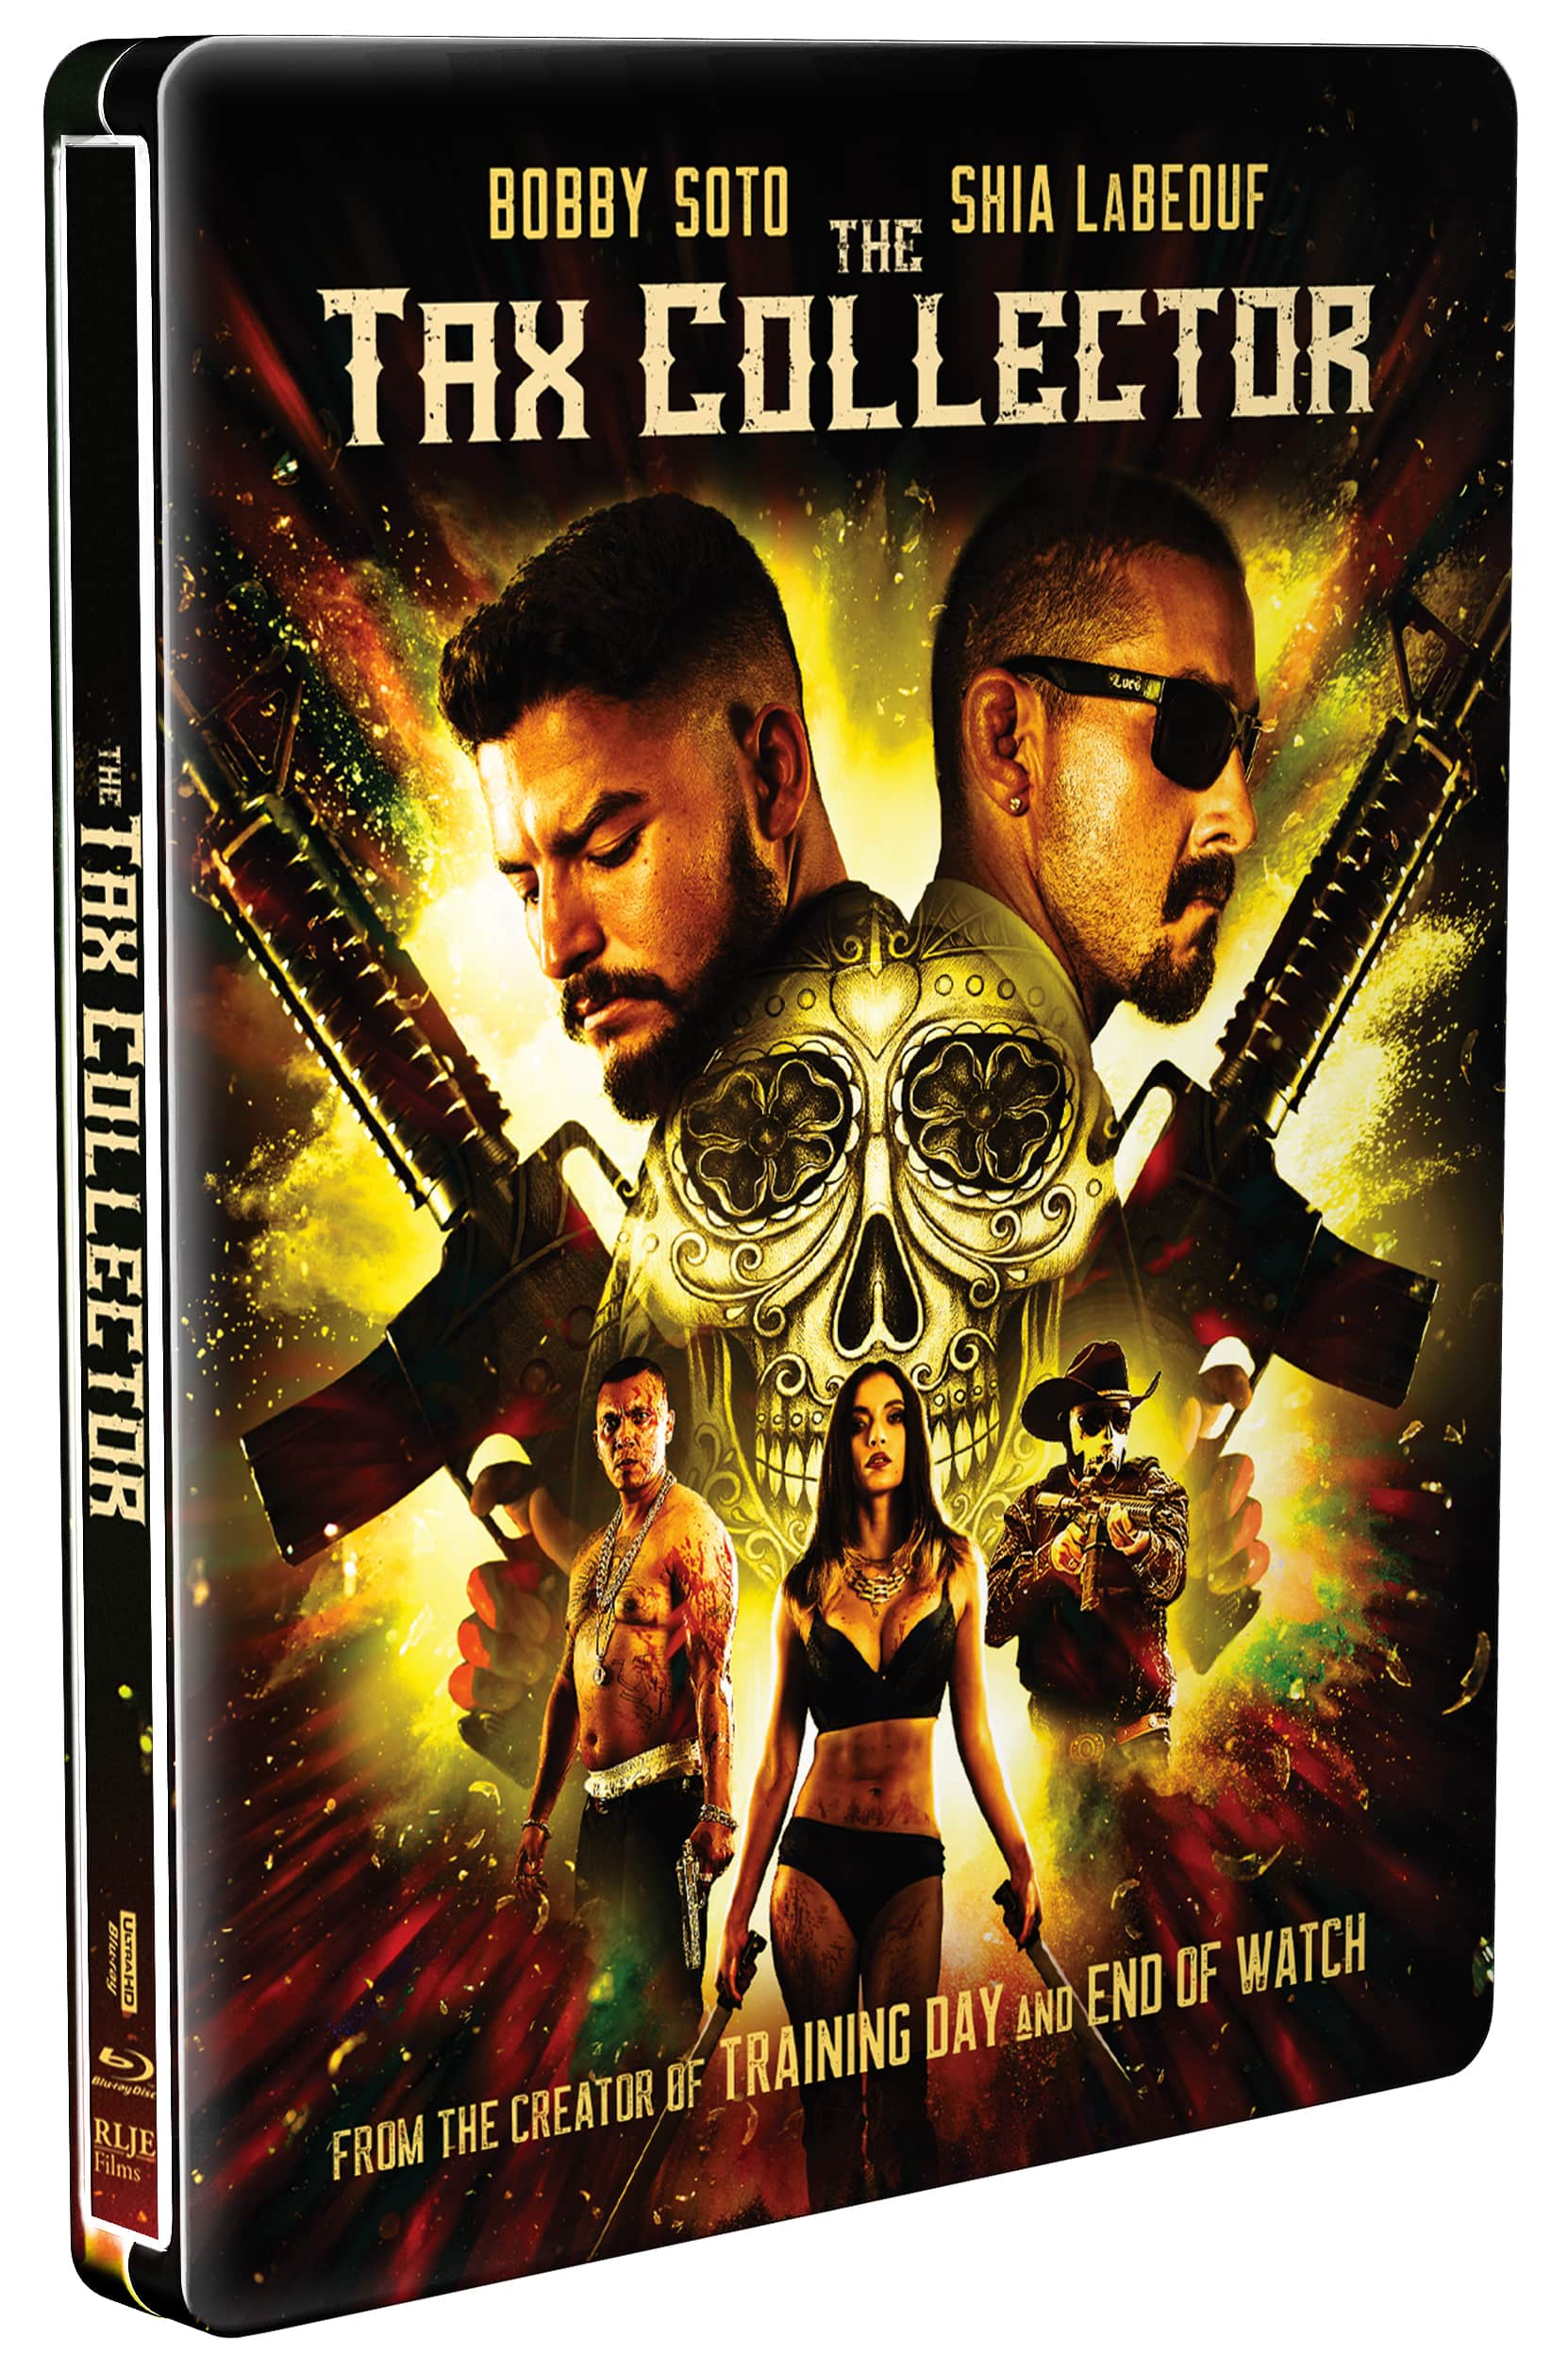 The Tax Collector Steelbook (4K Ultra HD + Blu-ray) $12.99 at Best Buy